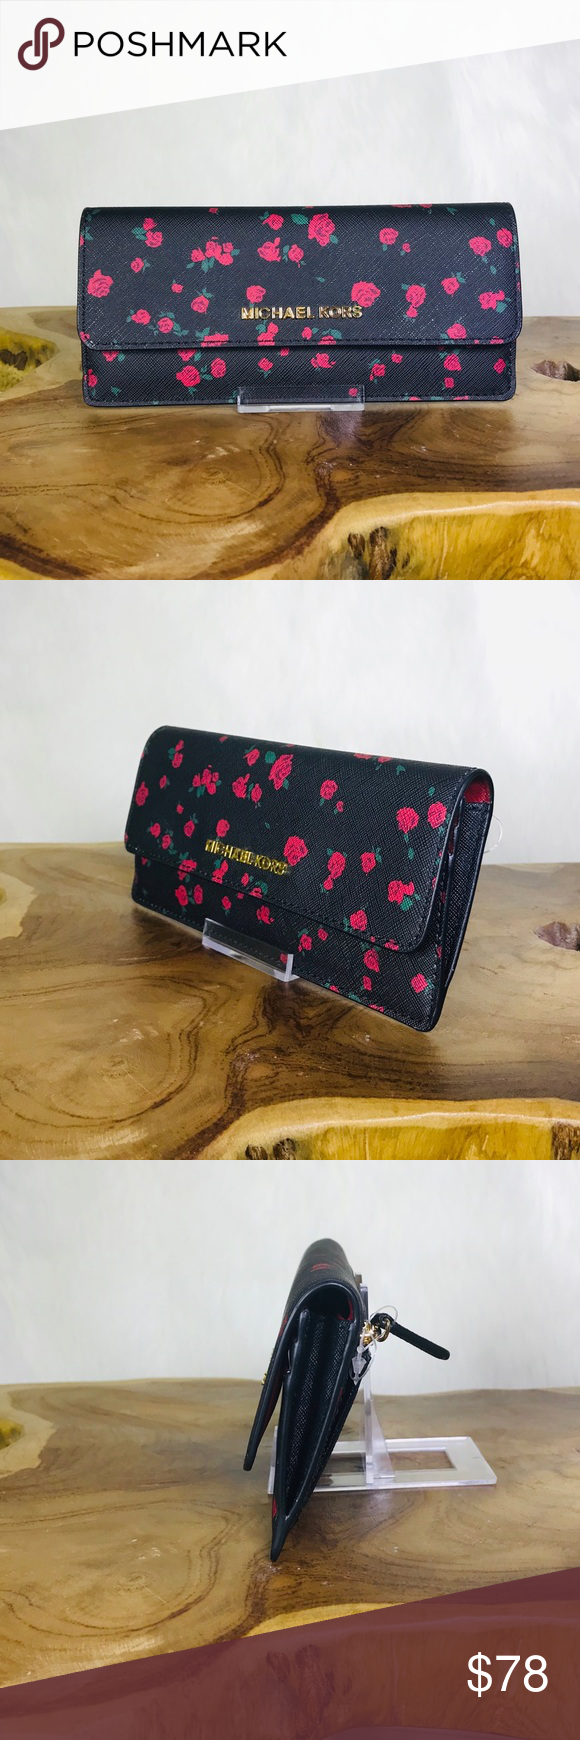 664a50826a78 Michael Kors Jet Set Flat Floral Wallet Michael Kors Jet Set Travel Flat  Floral Wallet Color